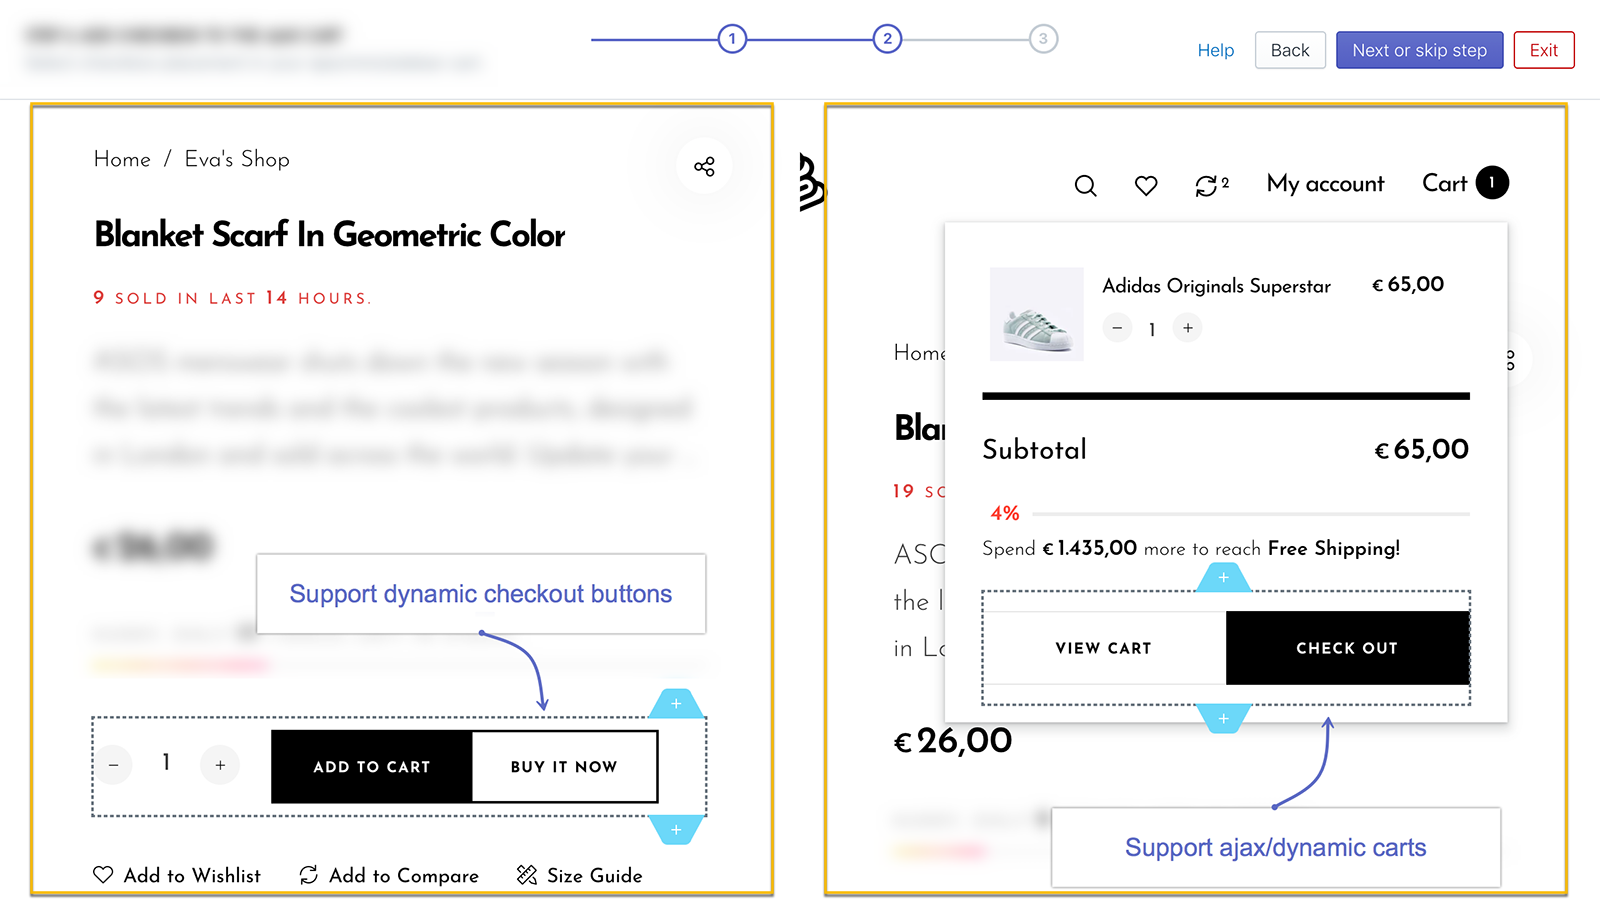 Support ajax/dynamic carts and dynamic checkout buttons